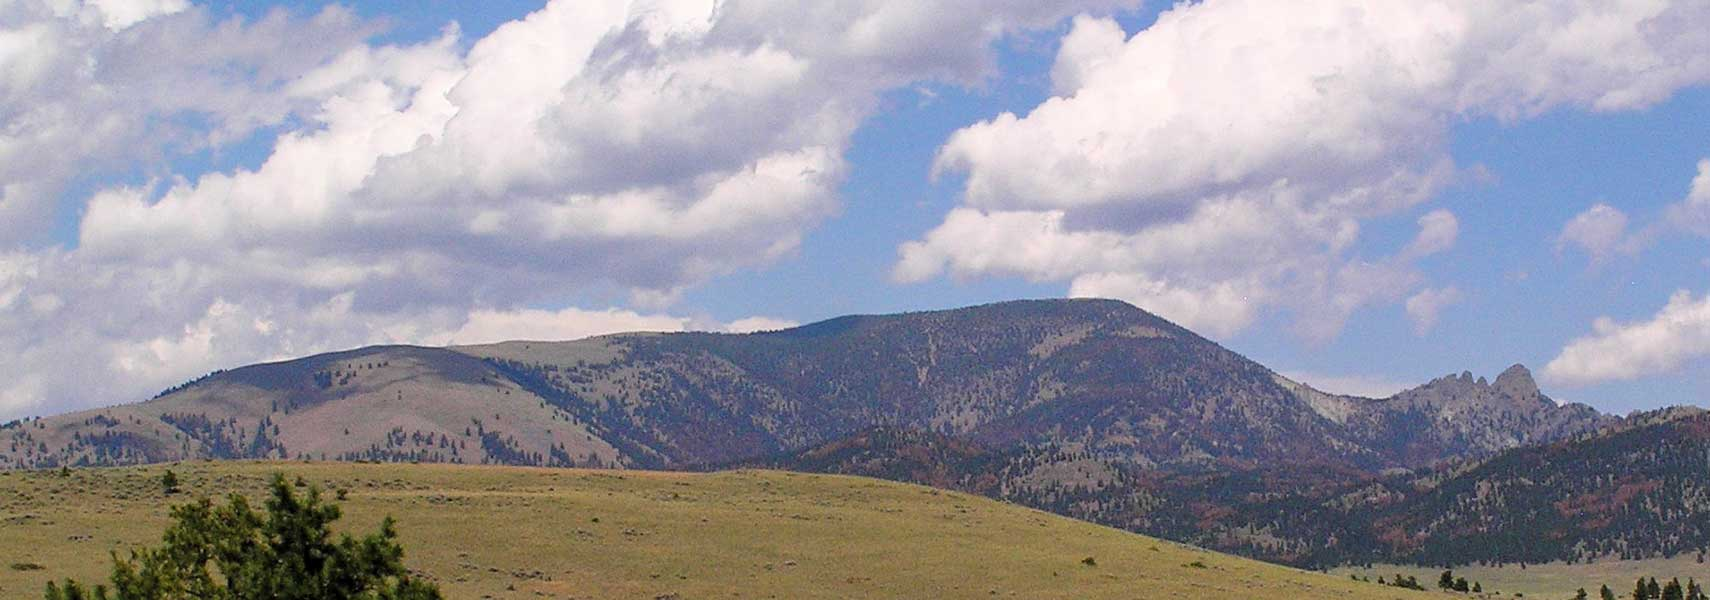 Sleeping Giant mountain formation north of Helena, Montana